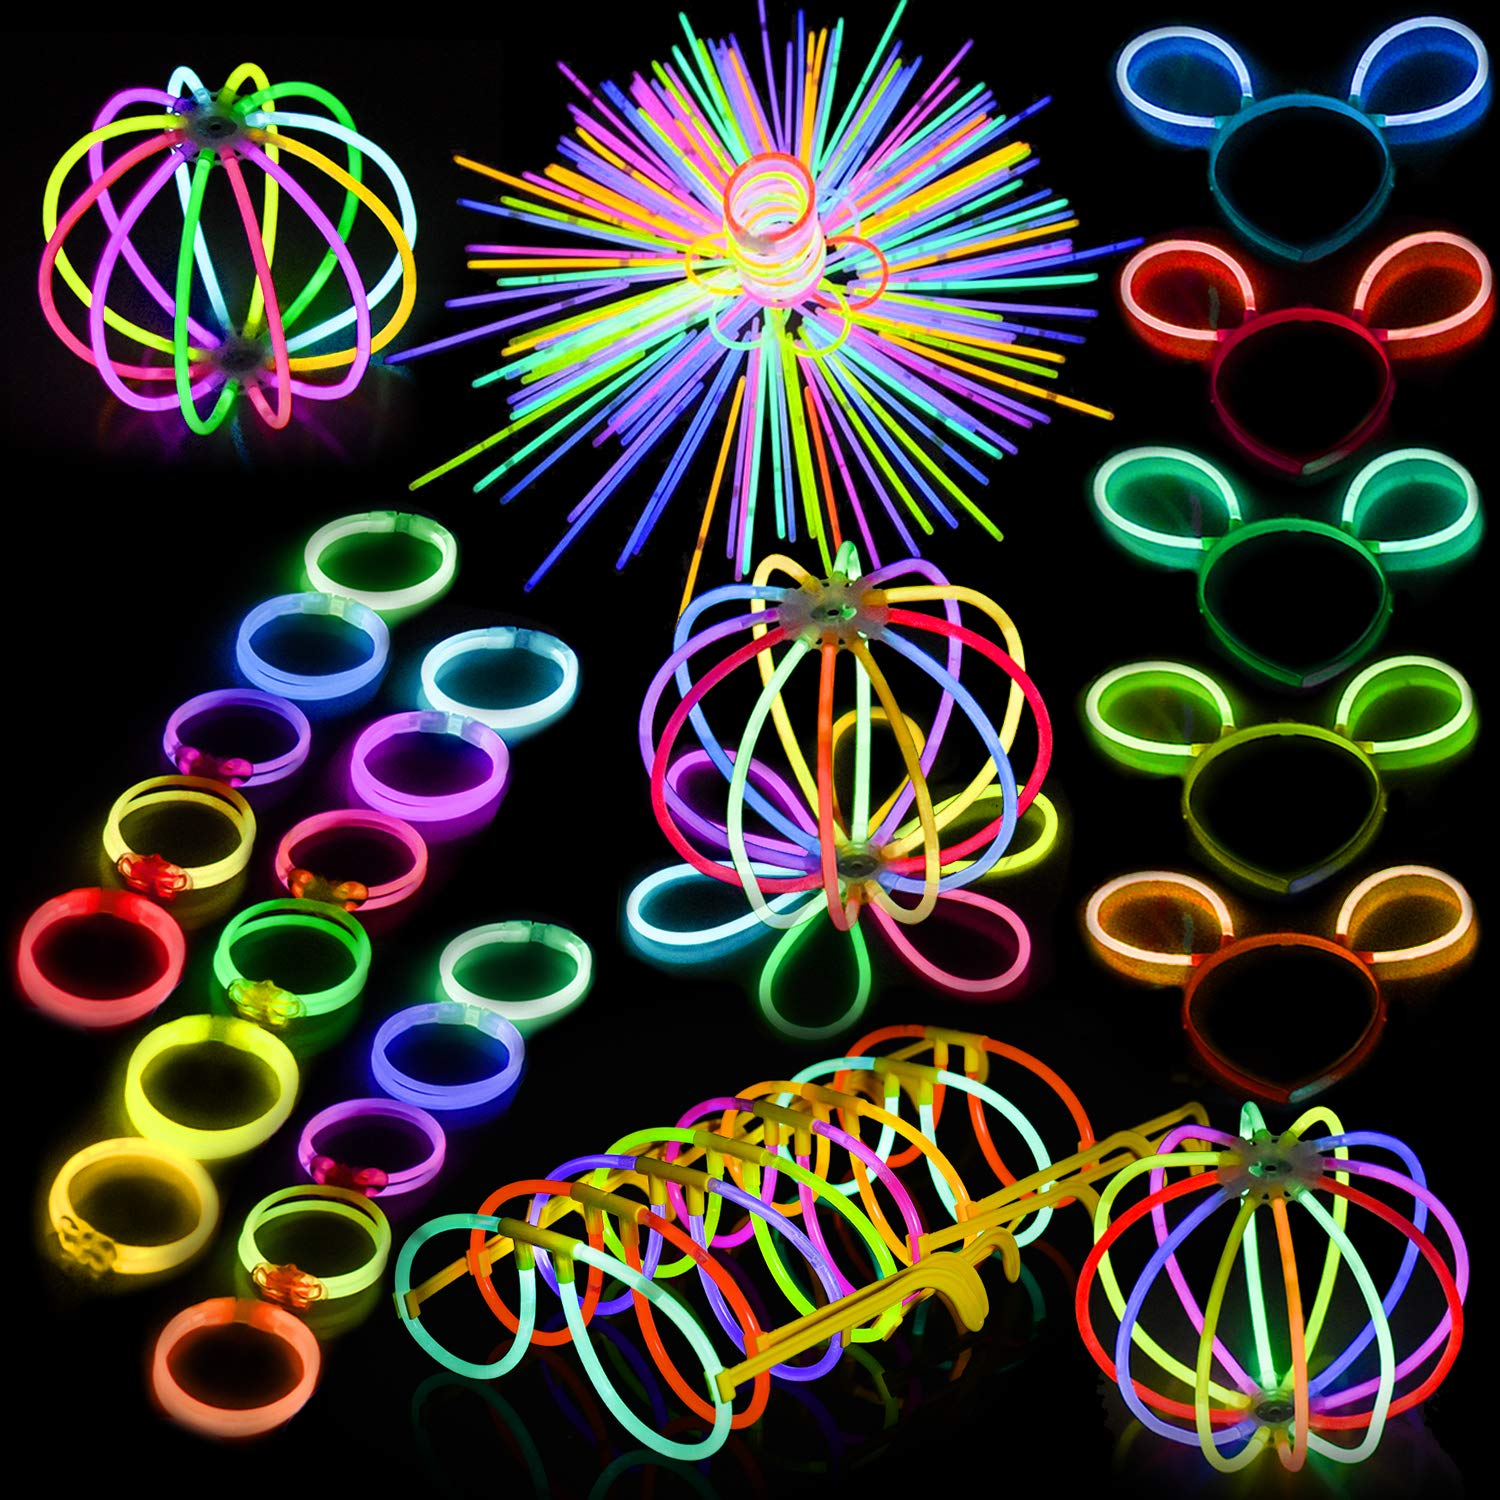 FUN LITTLE TOYS Glow Sticks Bulk 200 8 Glowsticks and 300 Glowstick Connecters Total 500 PCs 7 Colors Glow in The Dark for Xmas Party Favors New Year Party Favors